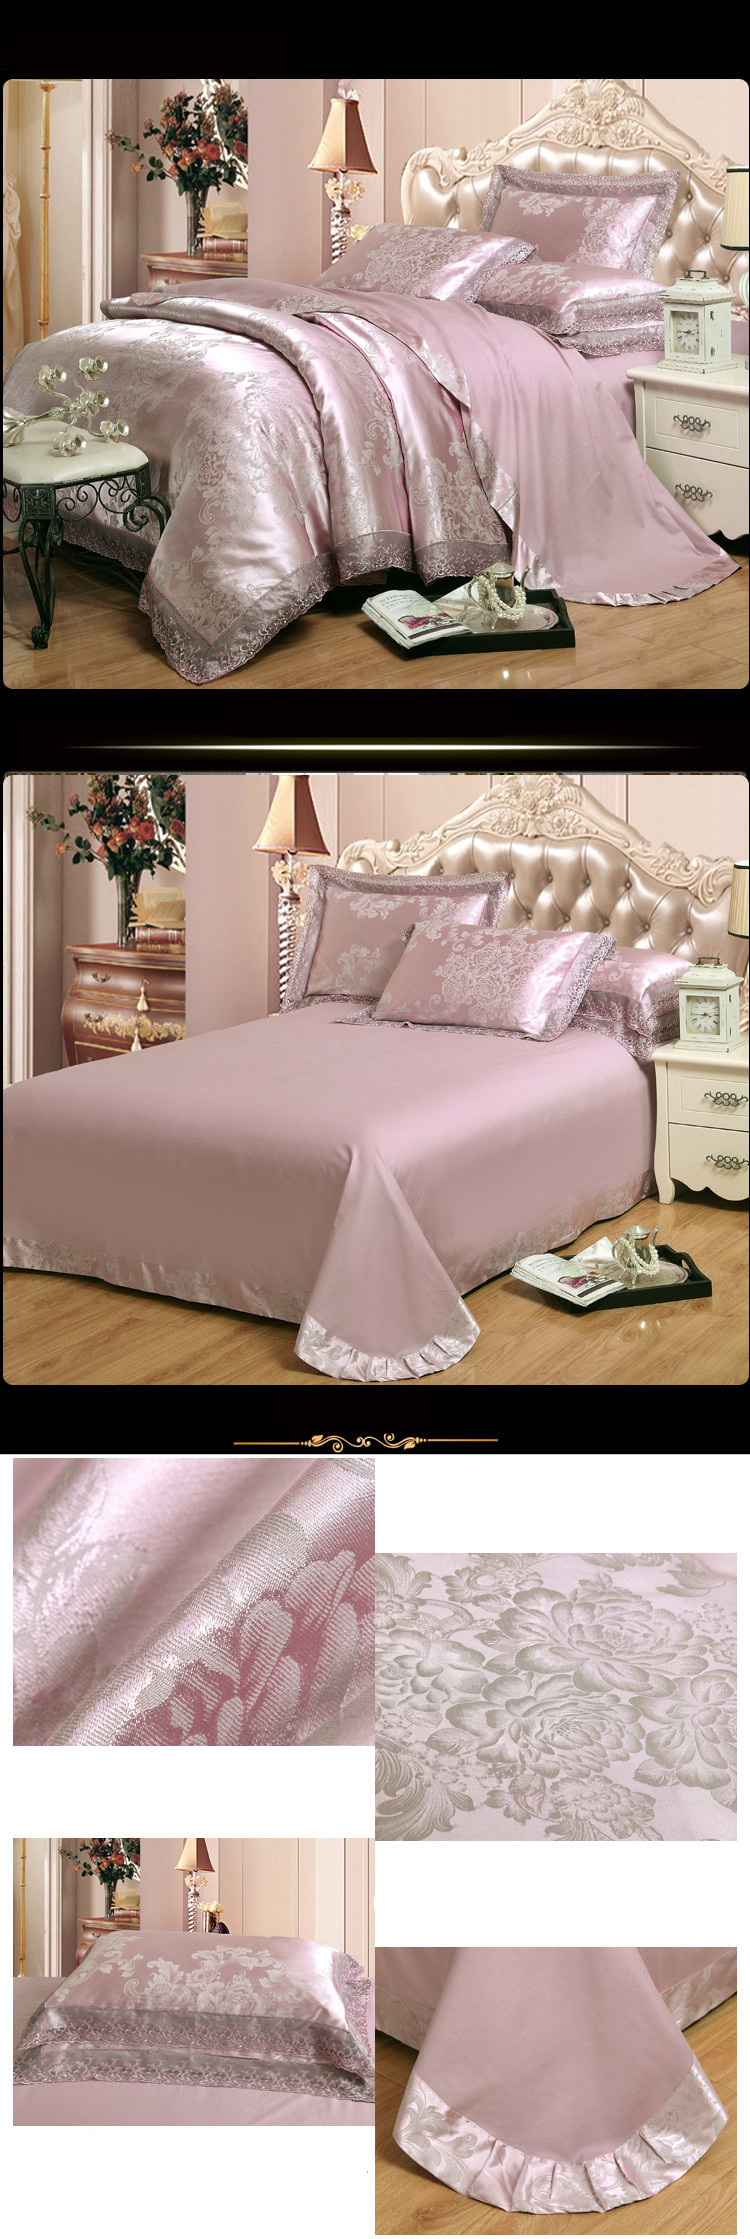 New Luxury Embroidery Tinsel Satin Silk Jacquard Bedding Set, Queen, King Size, 4pcs/6pcs 40